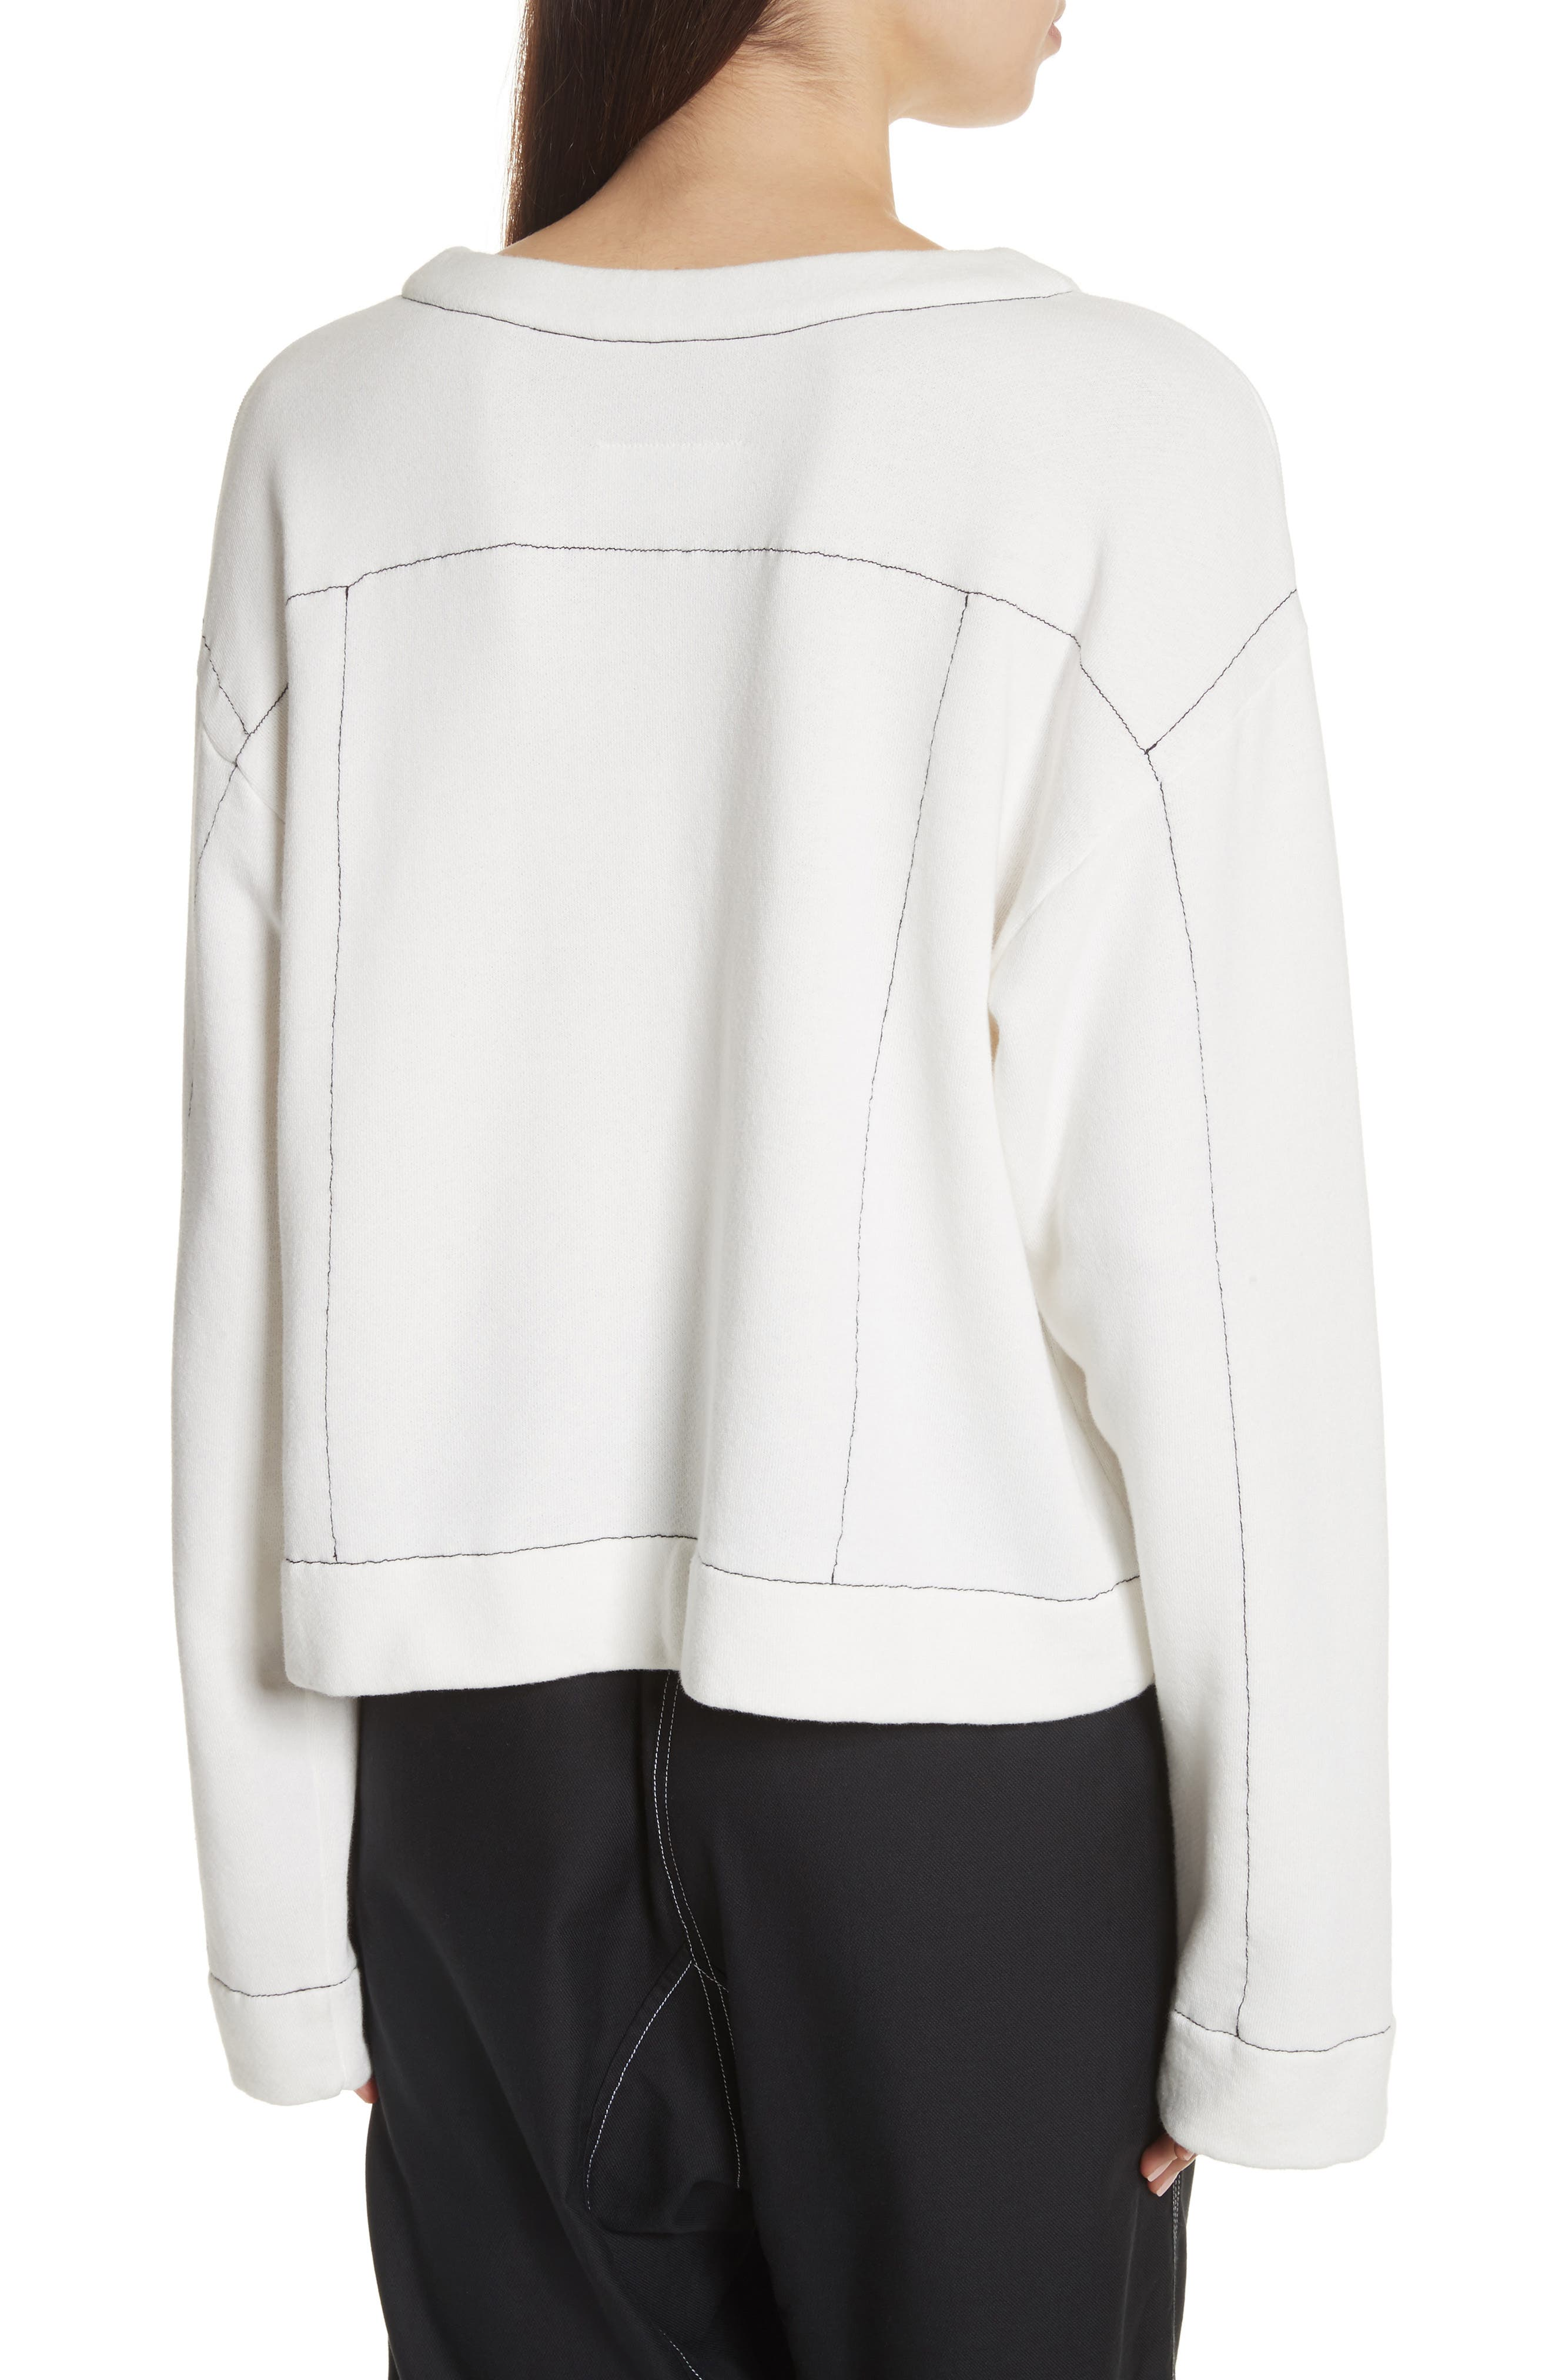 Topstitch Sweater,                             Alternate thumbnail 2, color,                             Off White